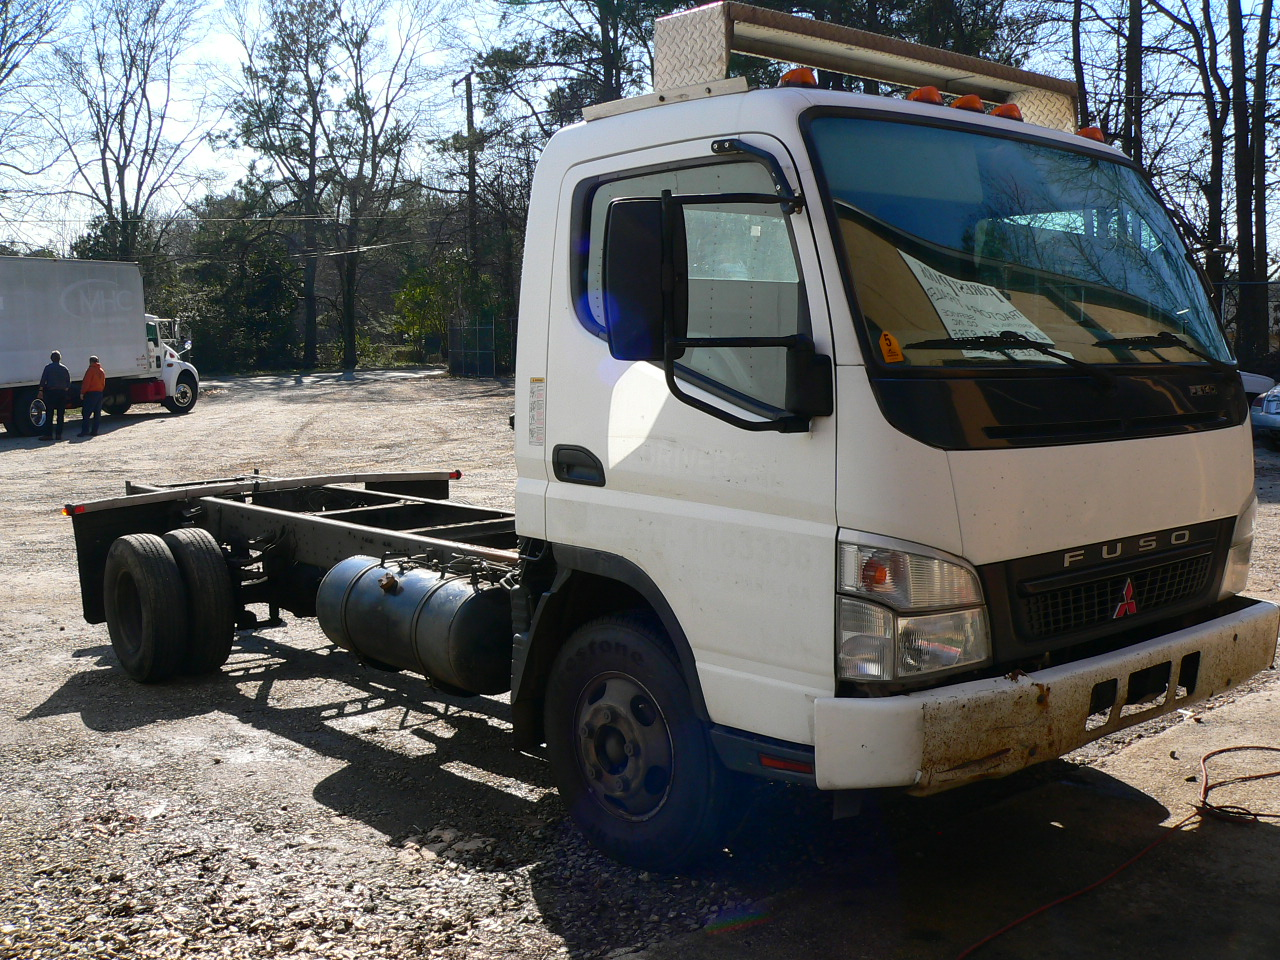 Used Light Duty Trucks For Sale Mitsubishi Transmission Rebuilt Dooley Vortex 454 Gas 75 Miles On 174k Chassis